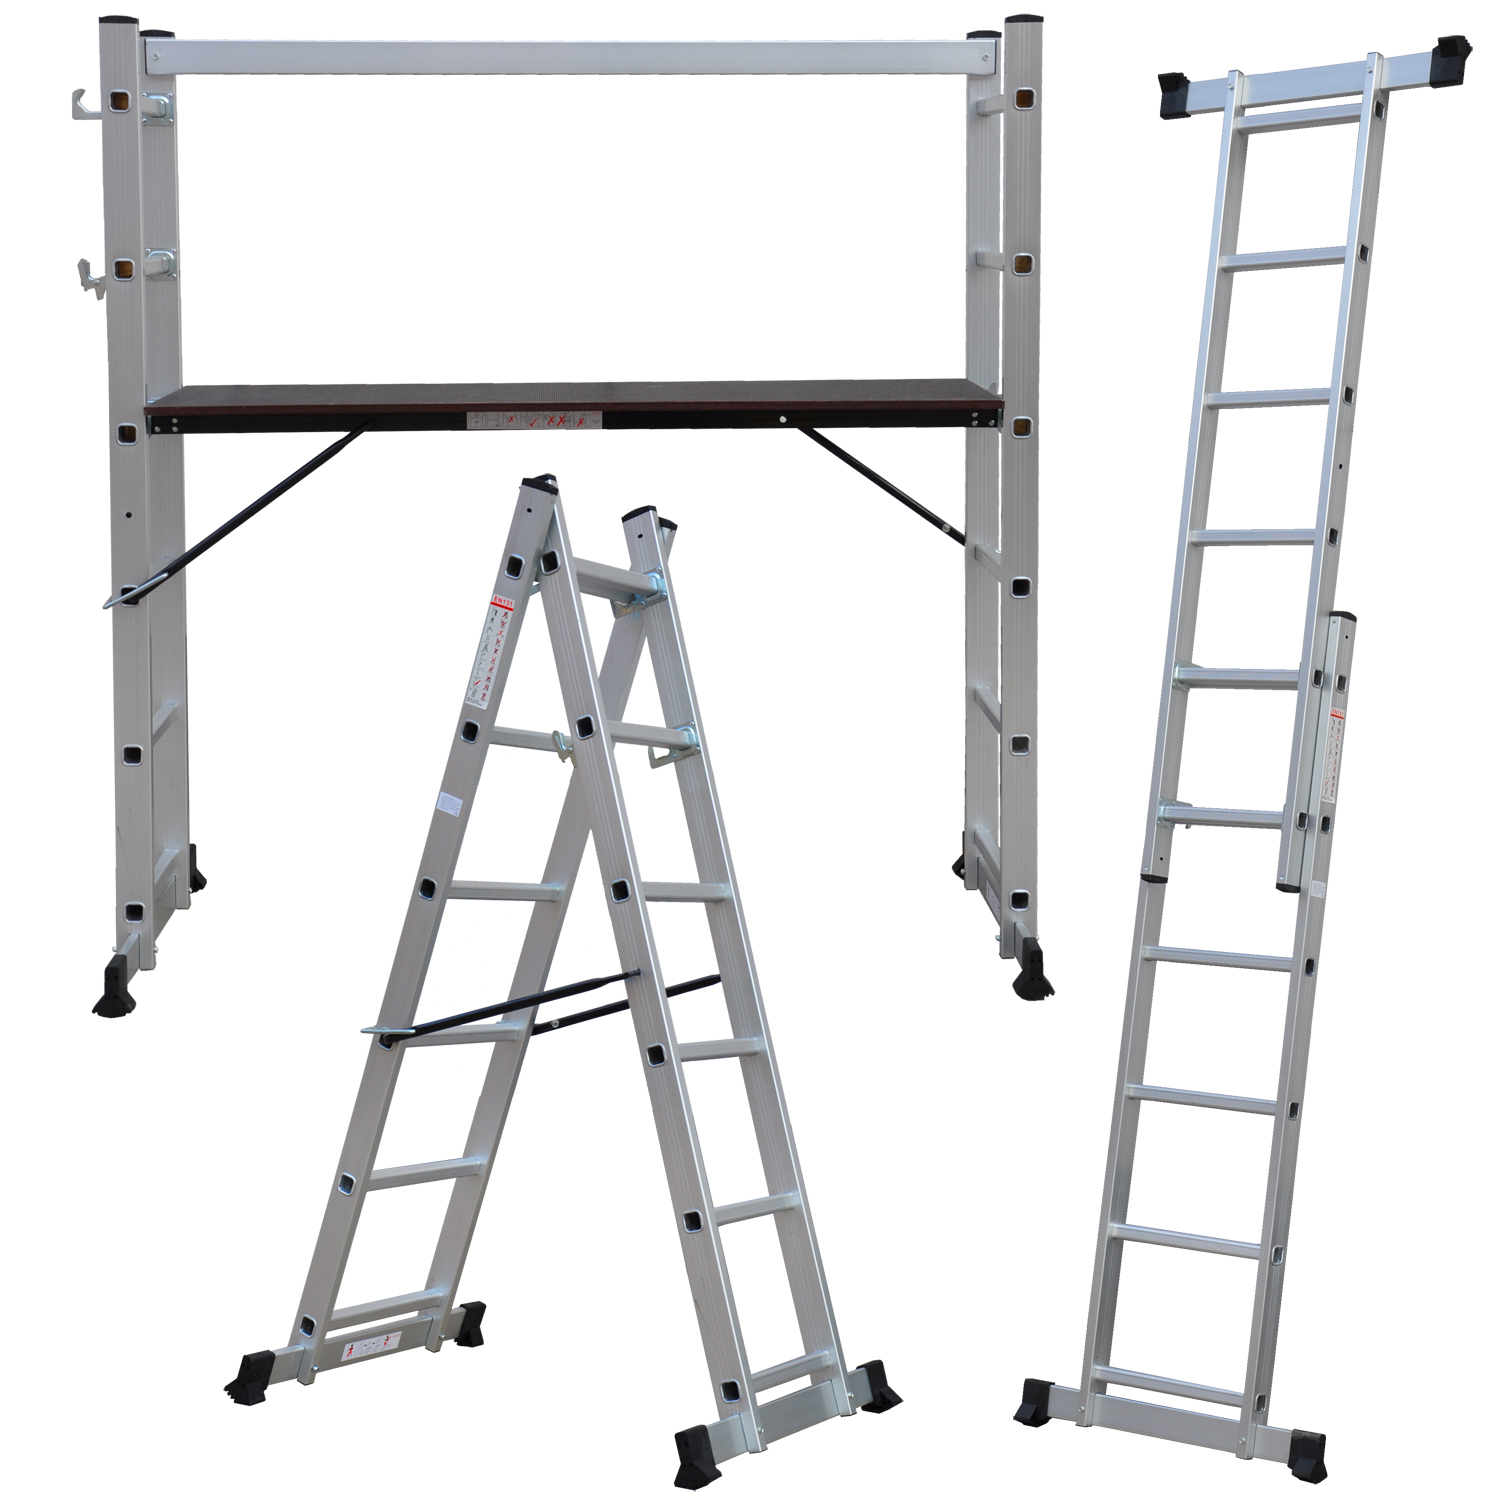 New Multi Purpose Diy Step Ladder Aluminium 5 Way Scaffold